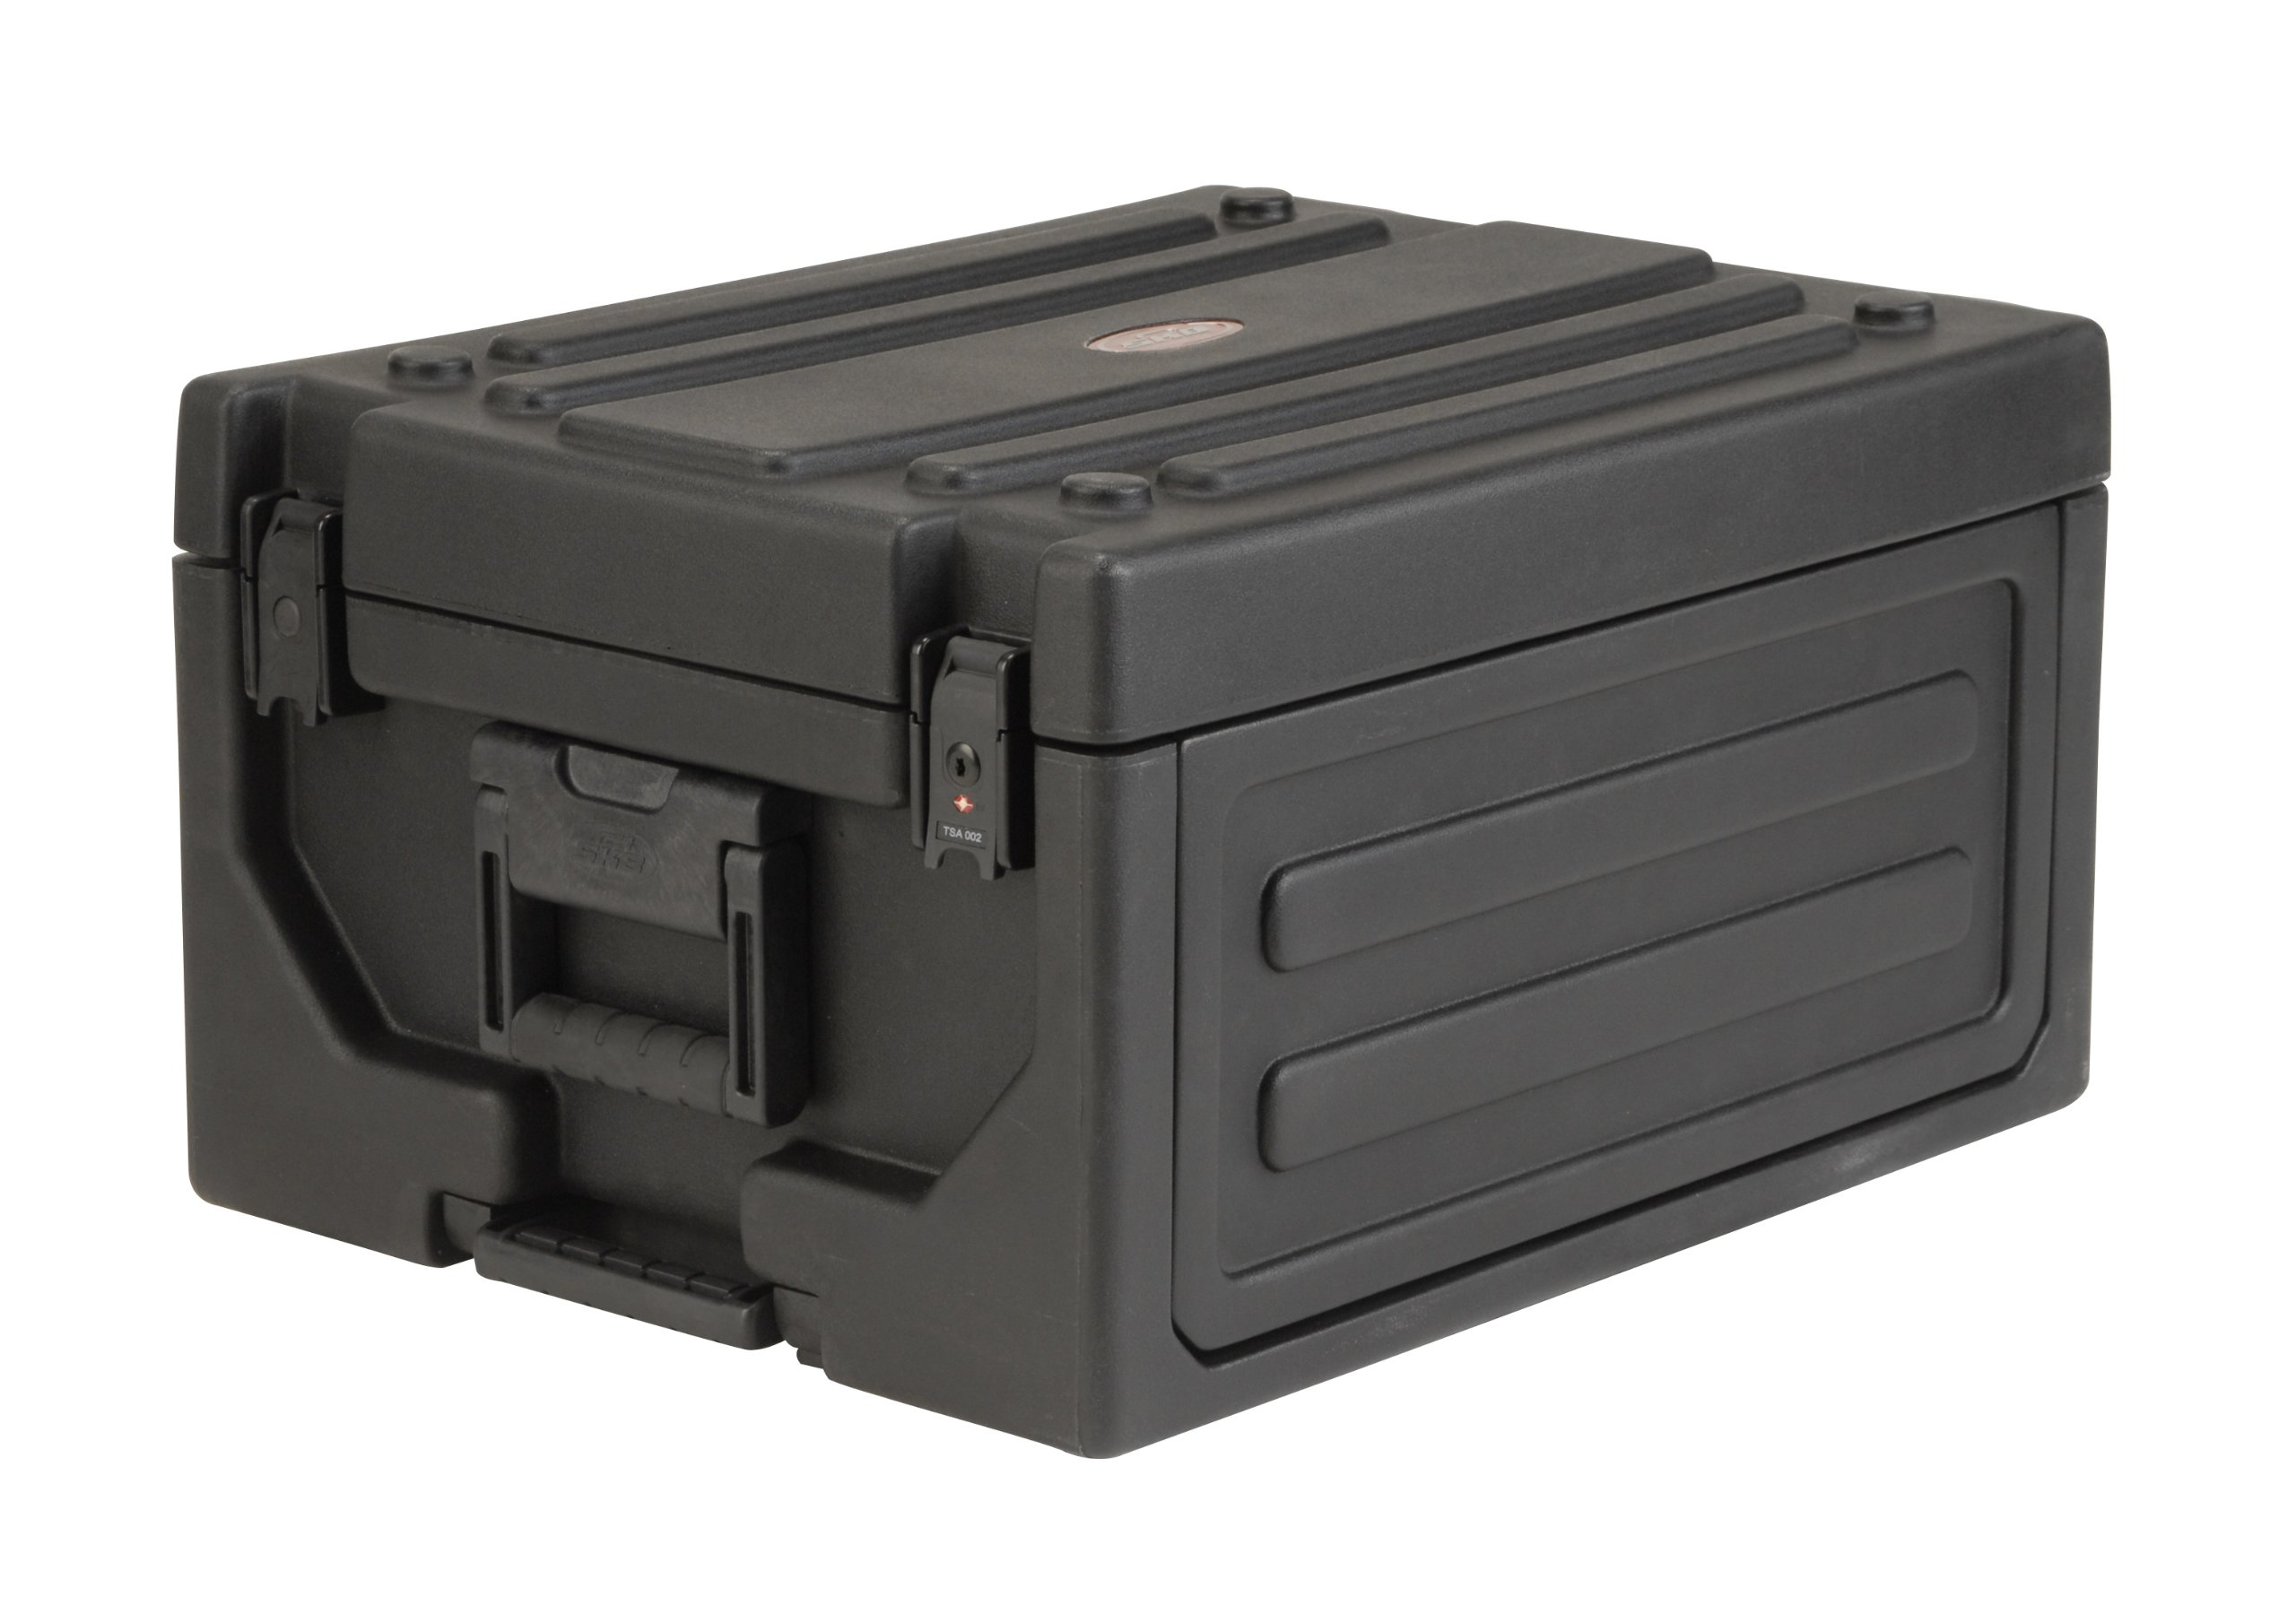 SKB Laptop/4U Rack with two step handle and wheels by SKB (Image #6)